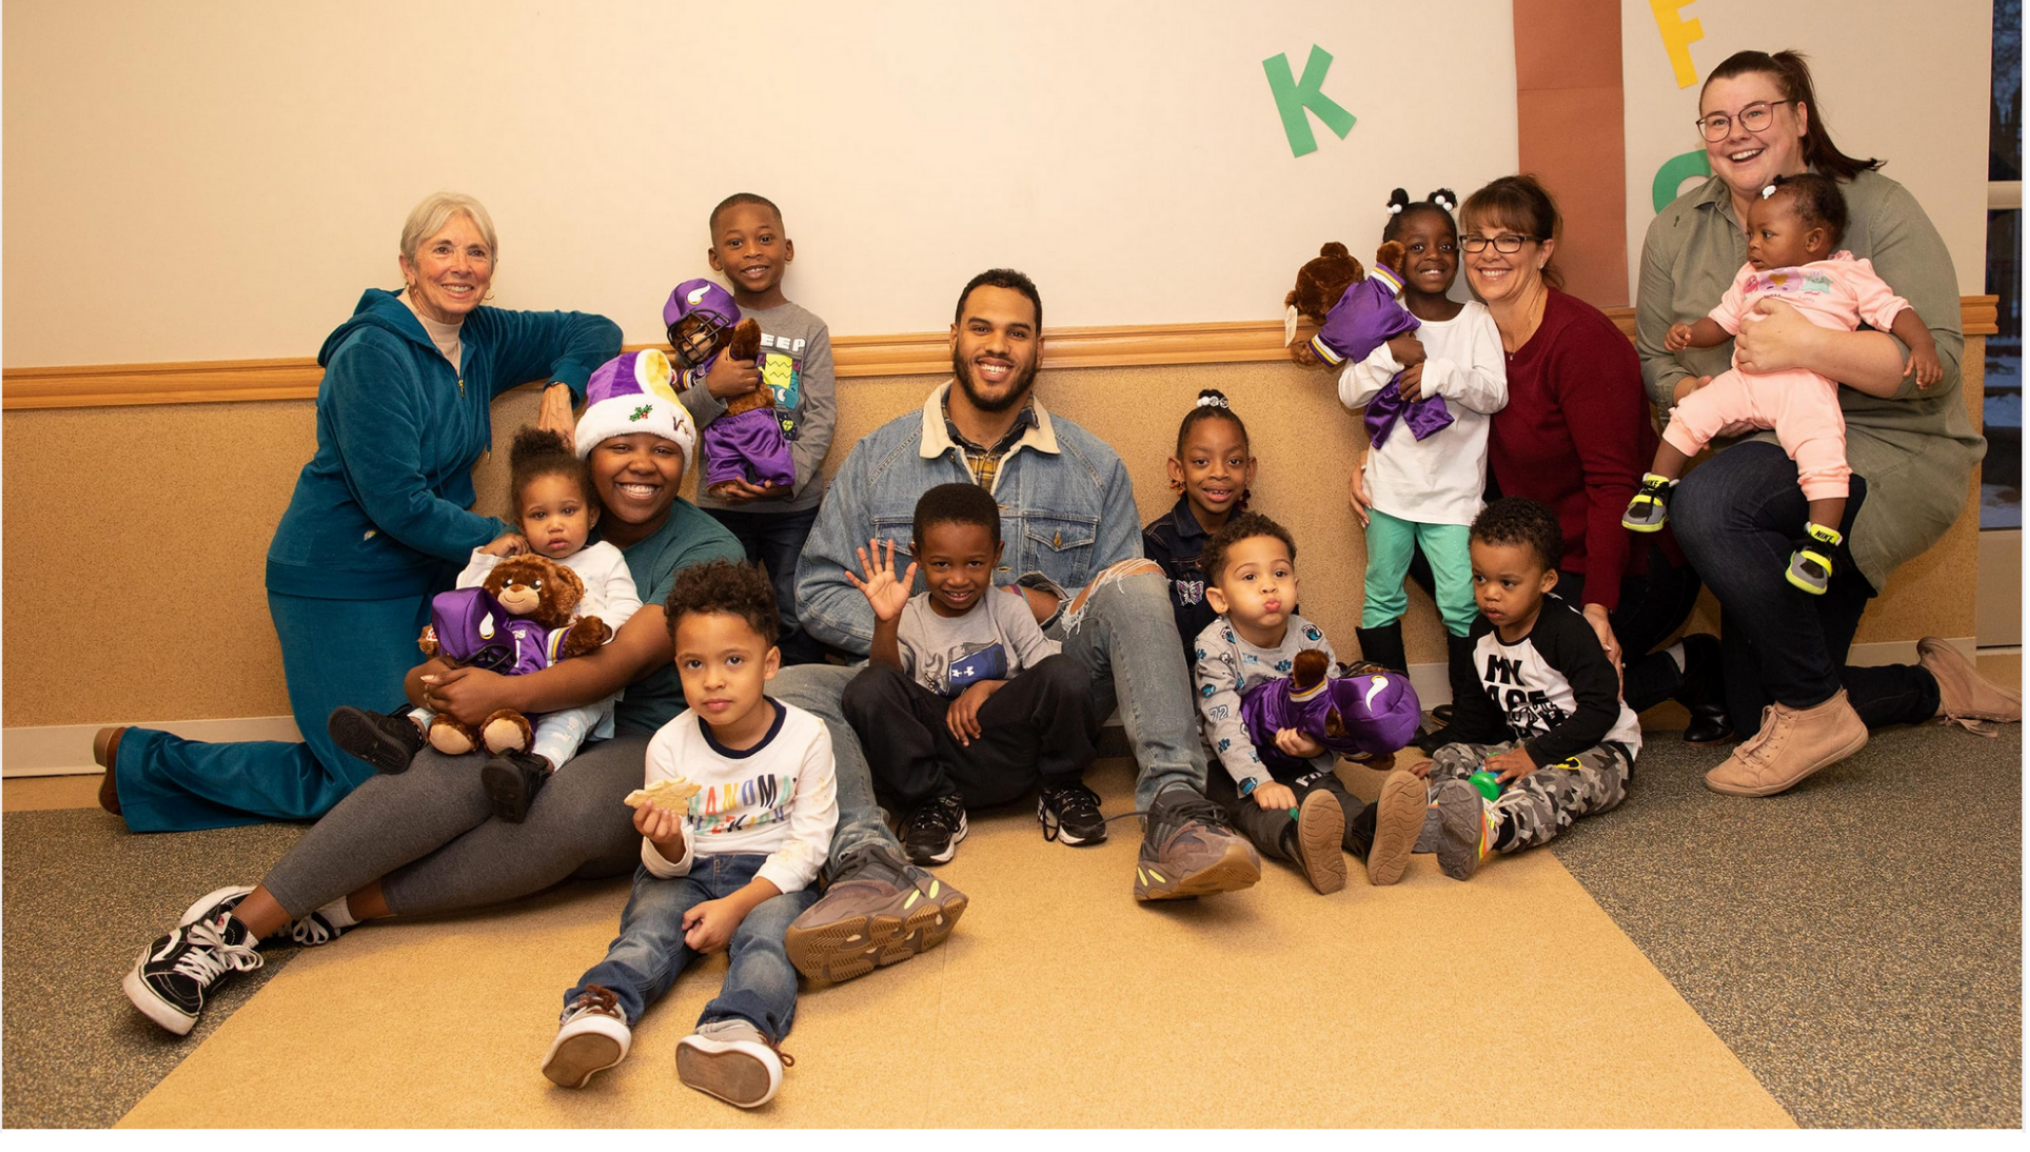 Host:  Anthony Barr is an LA Native, UCLA All-American, 4X NFL Pro-Bowler, and starter from the TOP RANKED Minnesota Vikings Defense. He is also a proud Loyola High School alumnus.   Photo: Jeremiah Program families received gift cards from Raise the Barr to help them buy holiday presents and winter supplies. Anthony joined for the celebration. Looks like a lot of happy faces!